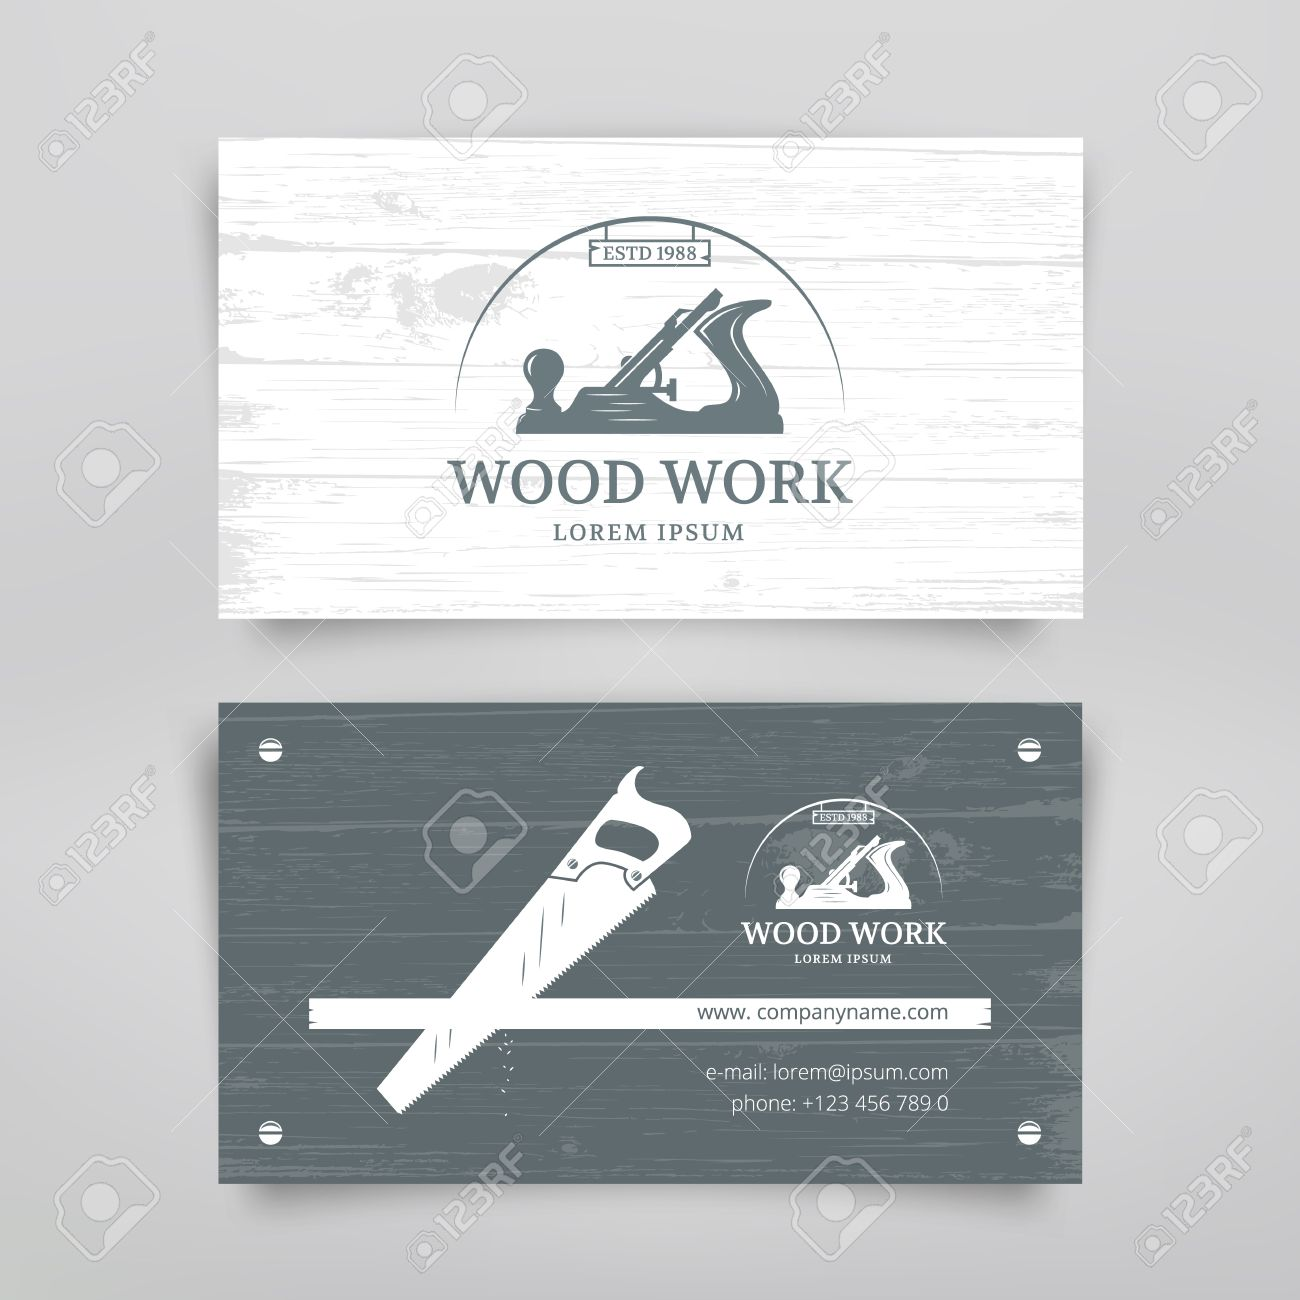 Woodwork vintage style business card design template carpentry vector woodwork vintage style business card design template carpentry tools vector wajeb Choice Image